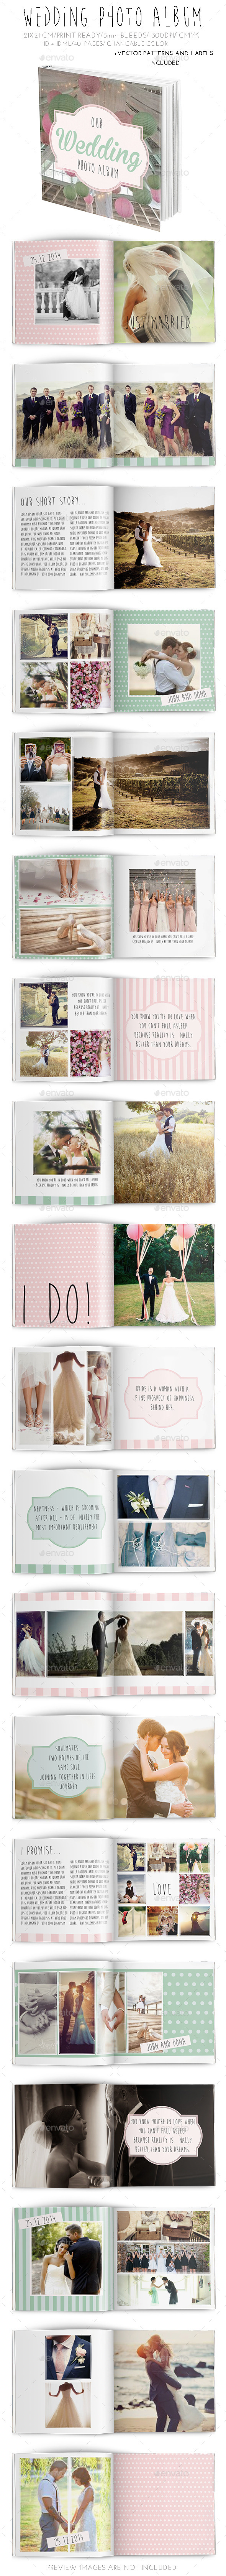 GraphicRiver Wedding Photo Album 9563940